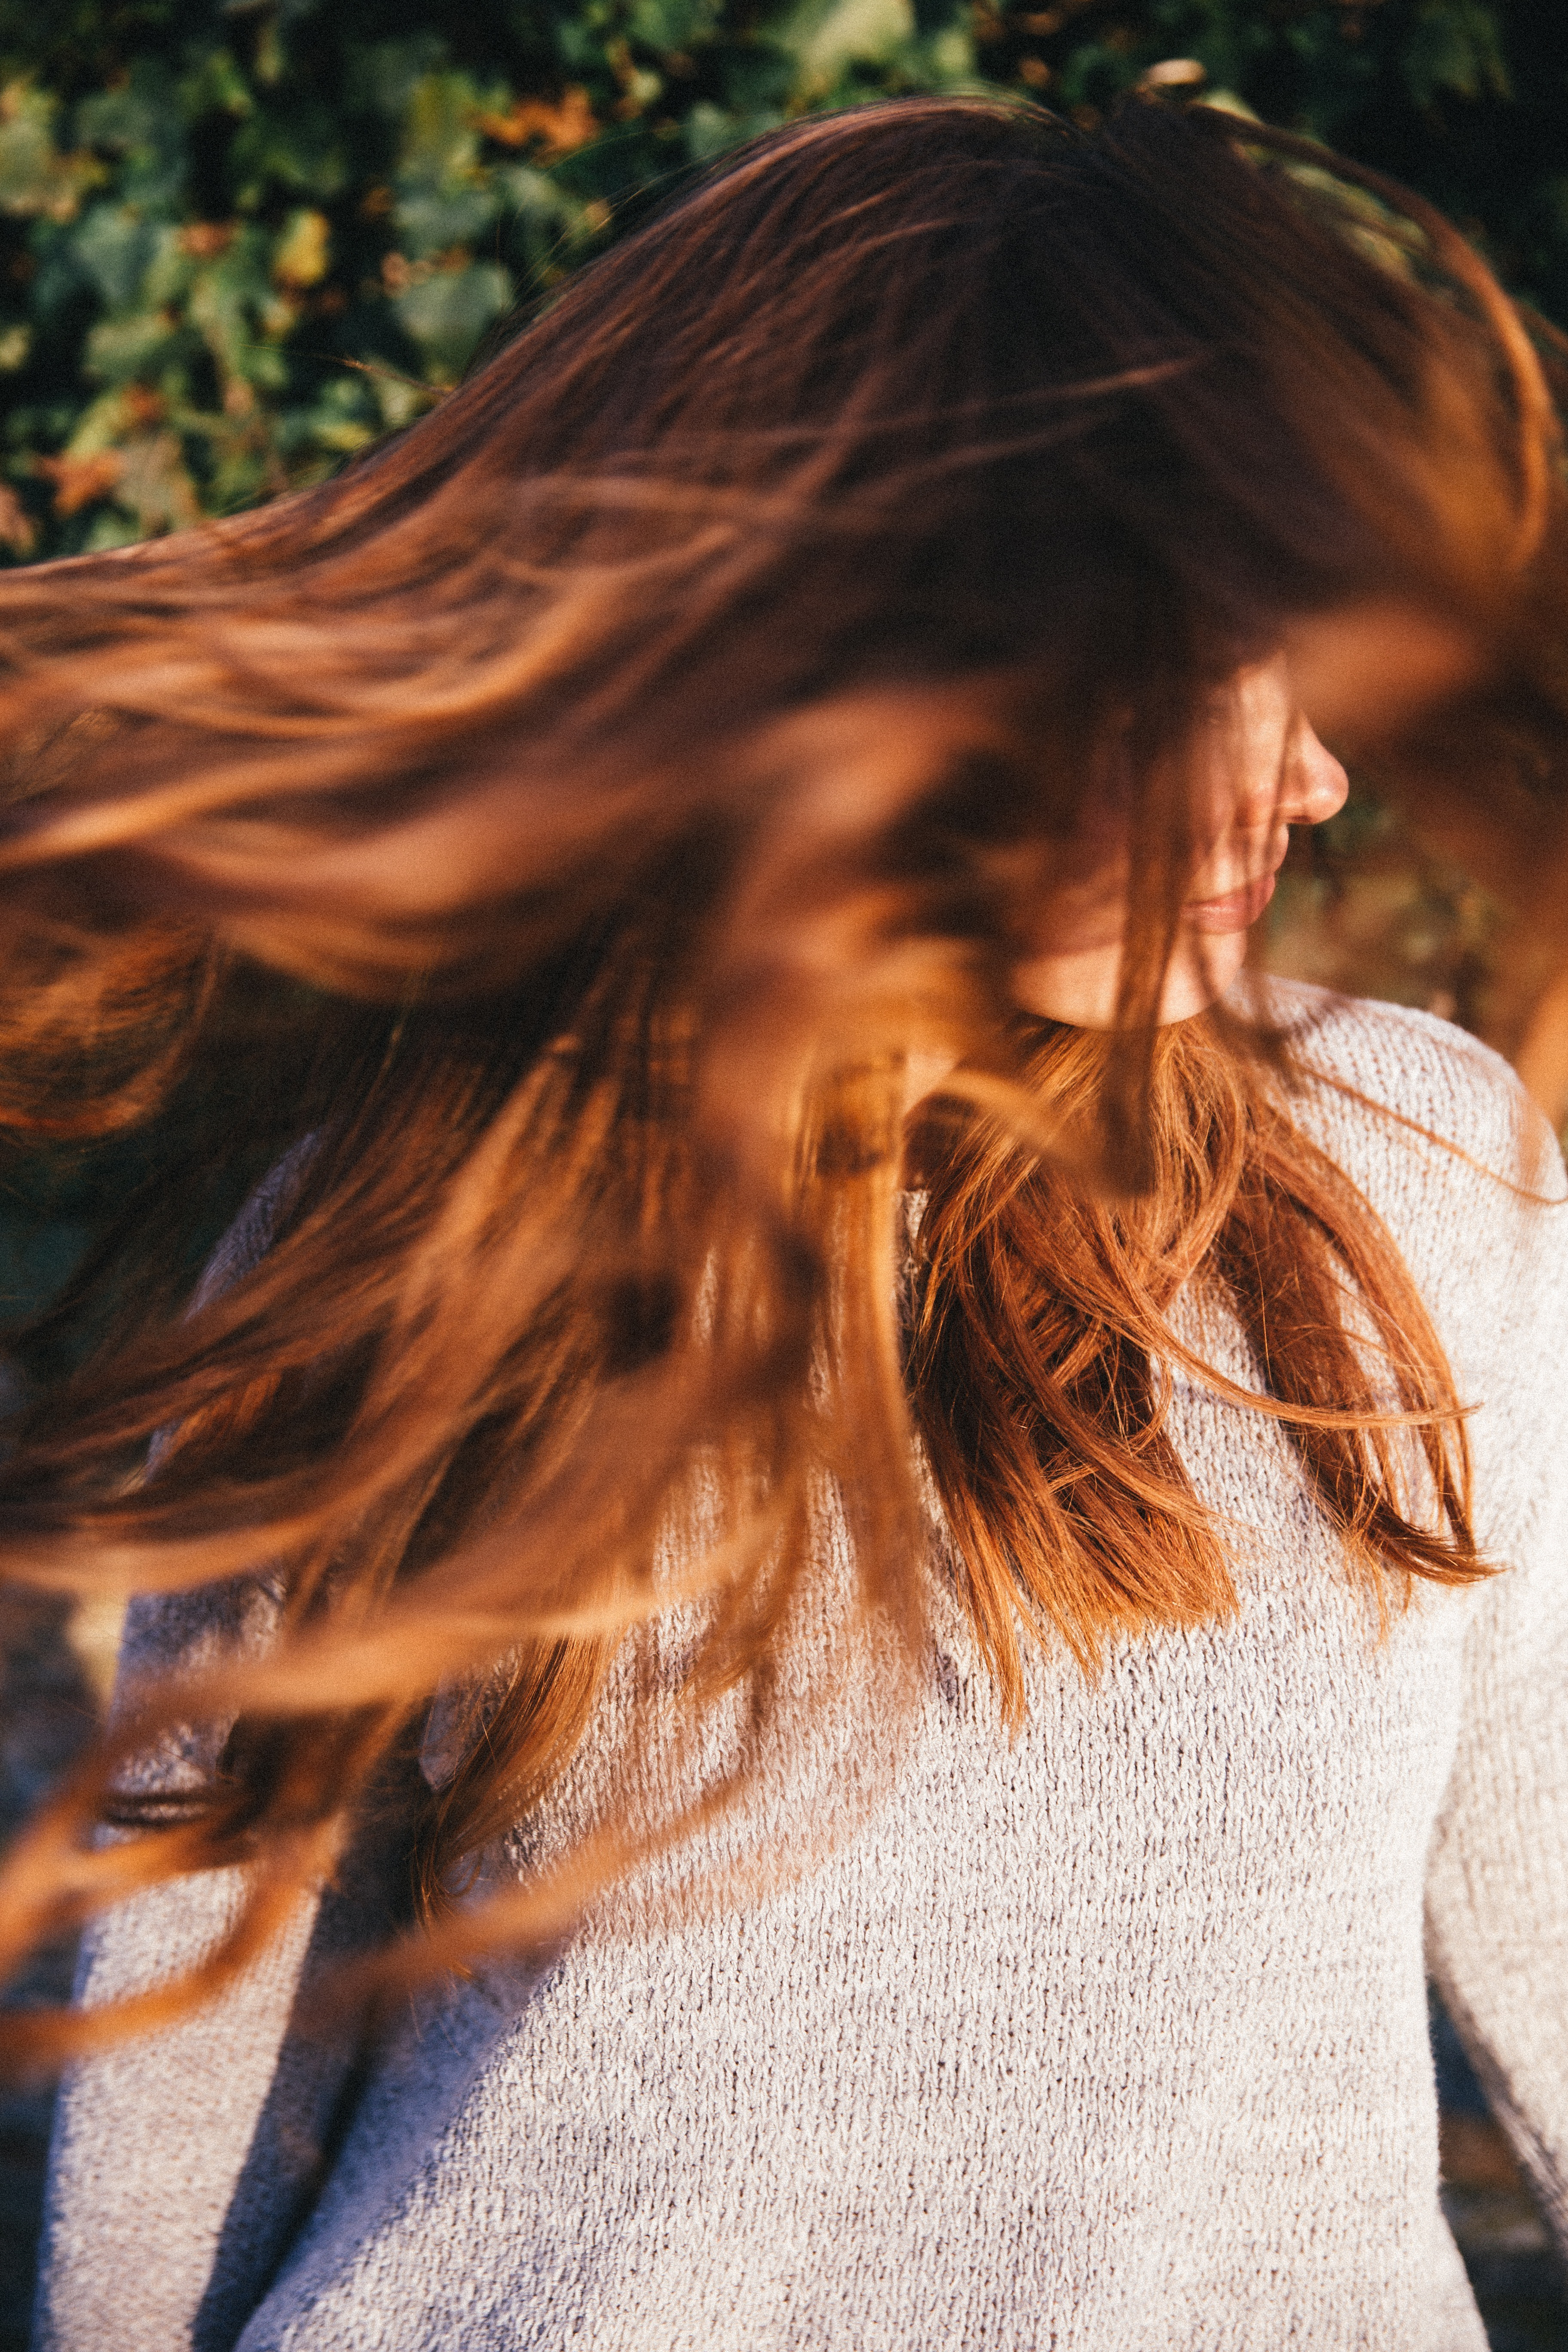 girl,hair,young,wind,attractive